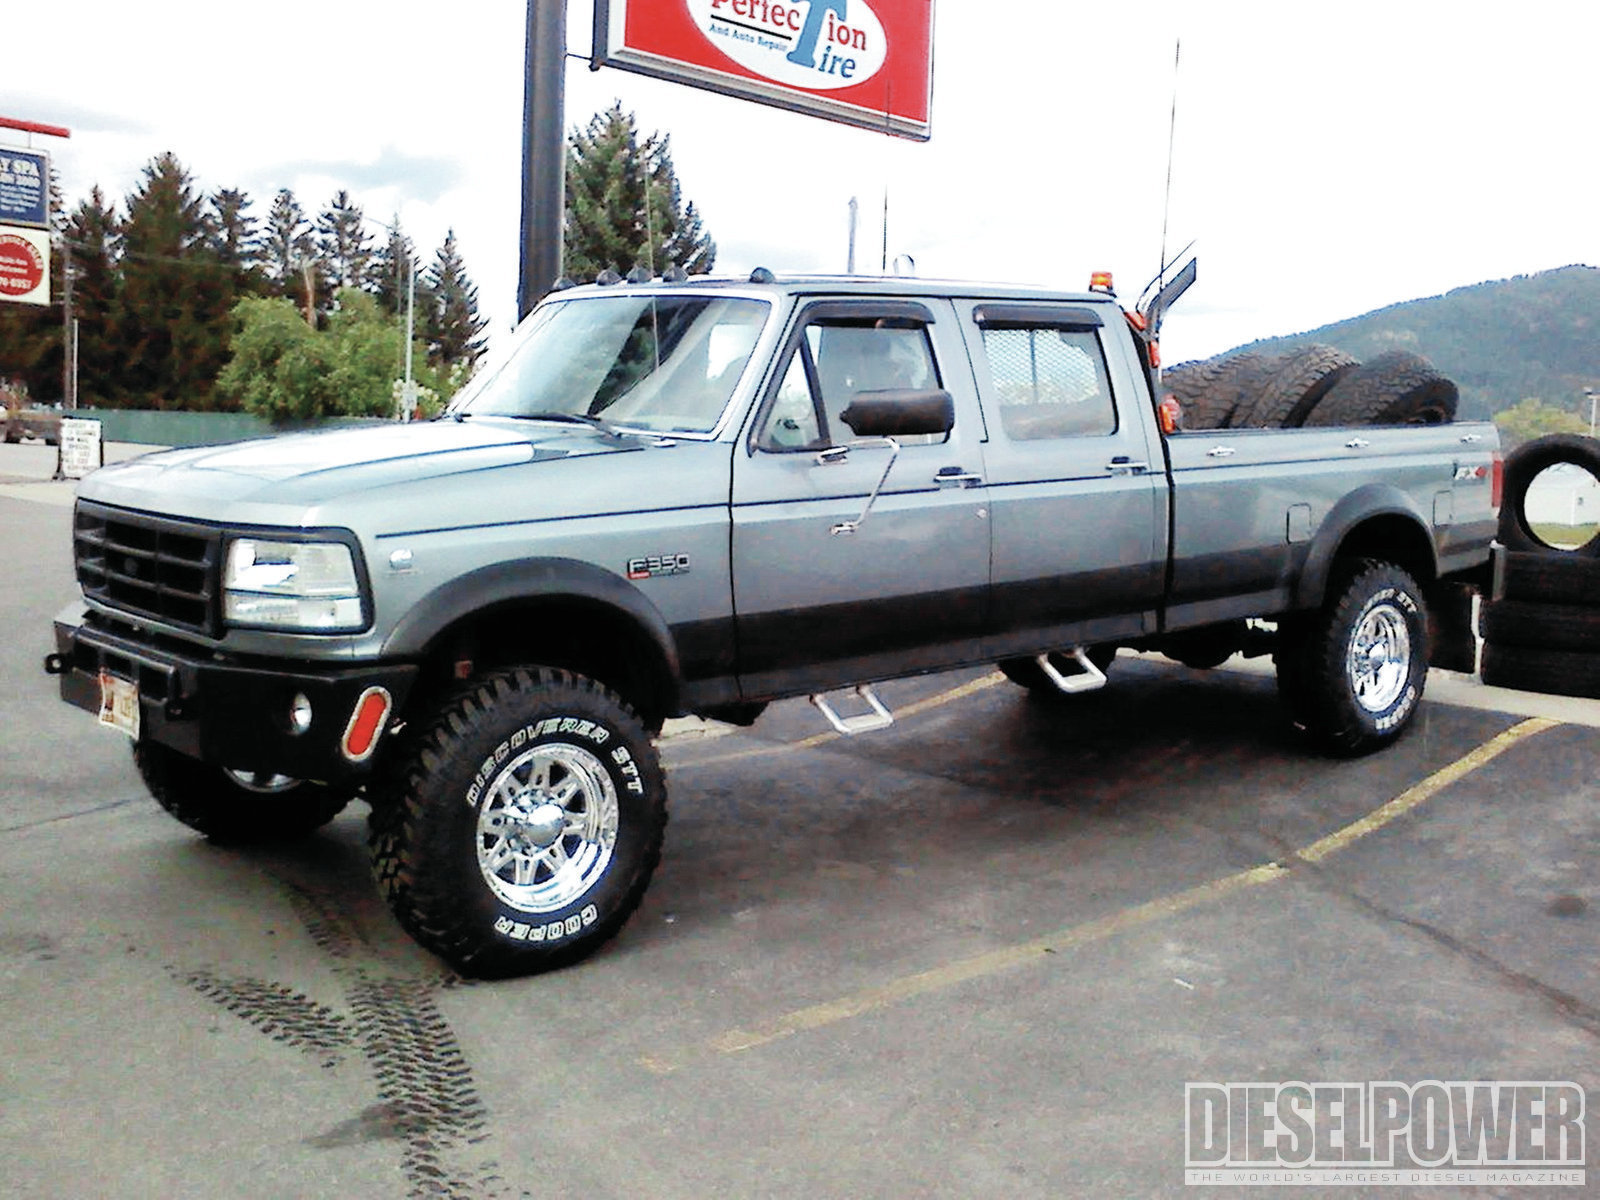 1990 Ford F-350 #1 Ford F-350 #1